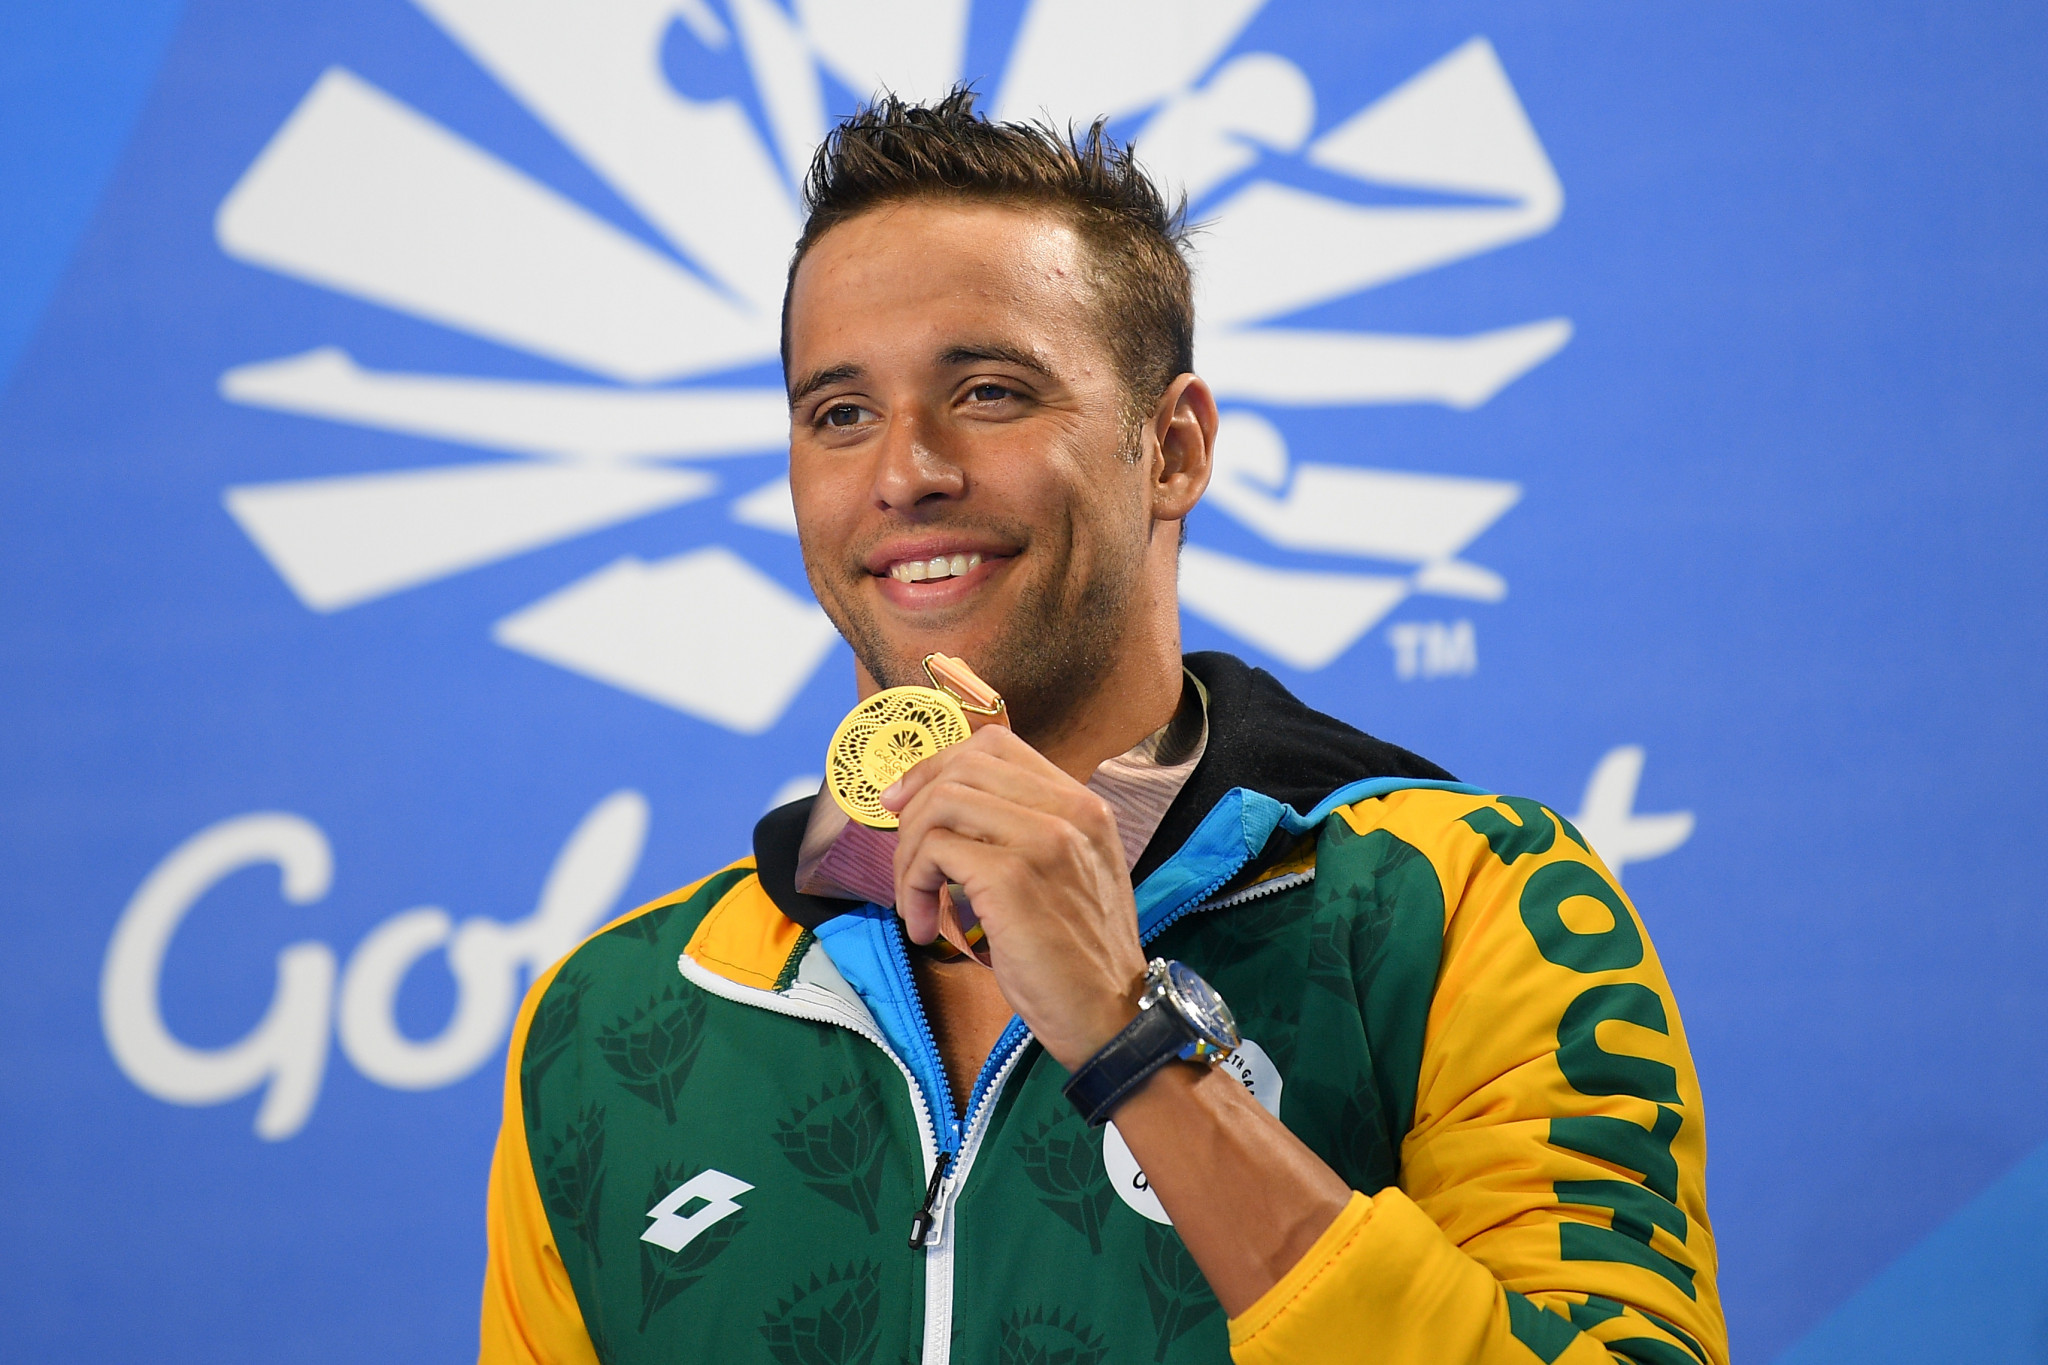 SA's Van der Burgh wins gold in 50m breaststroke